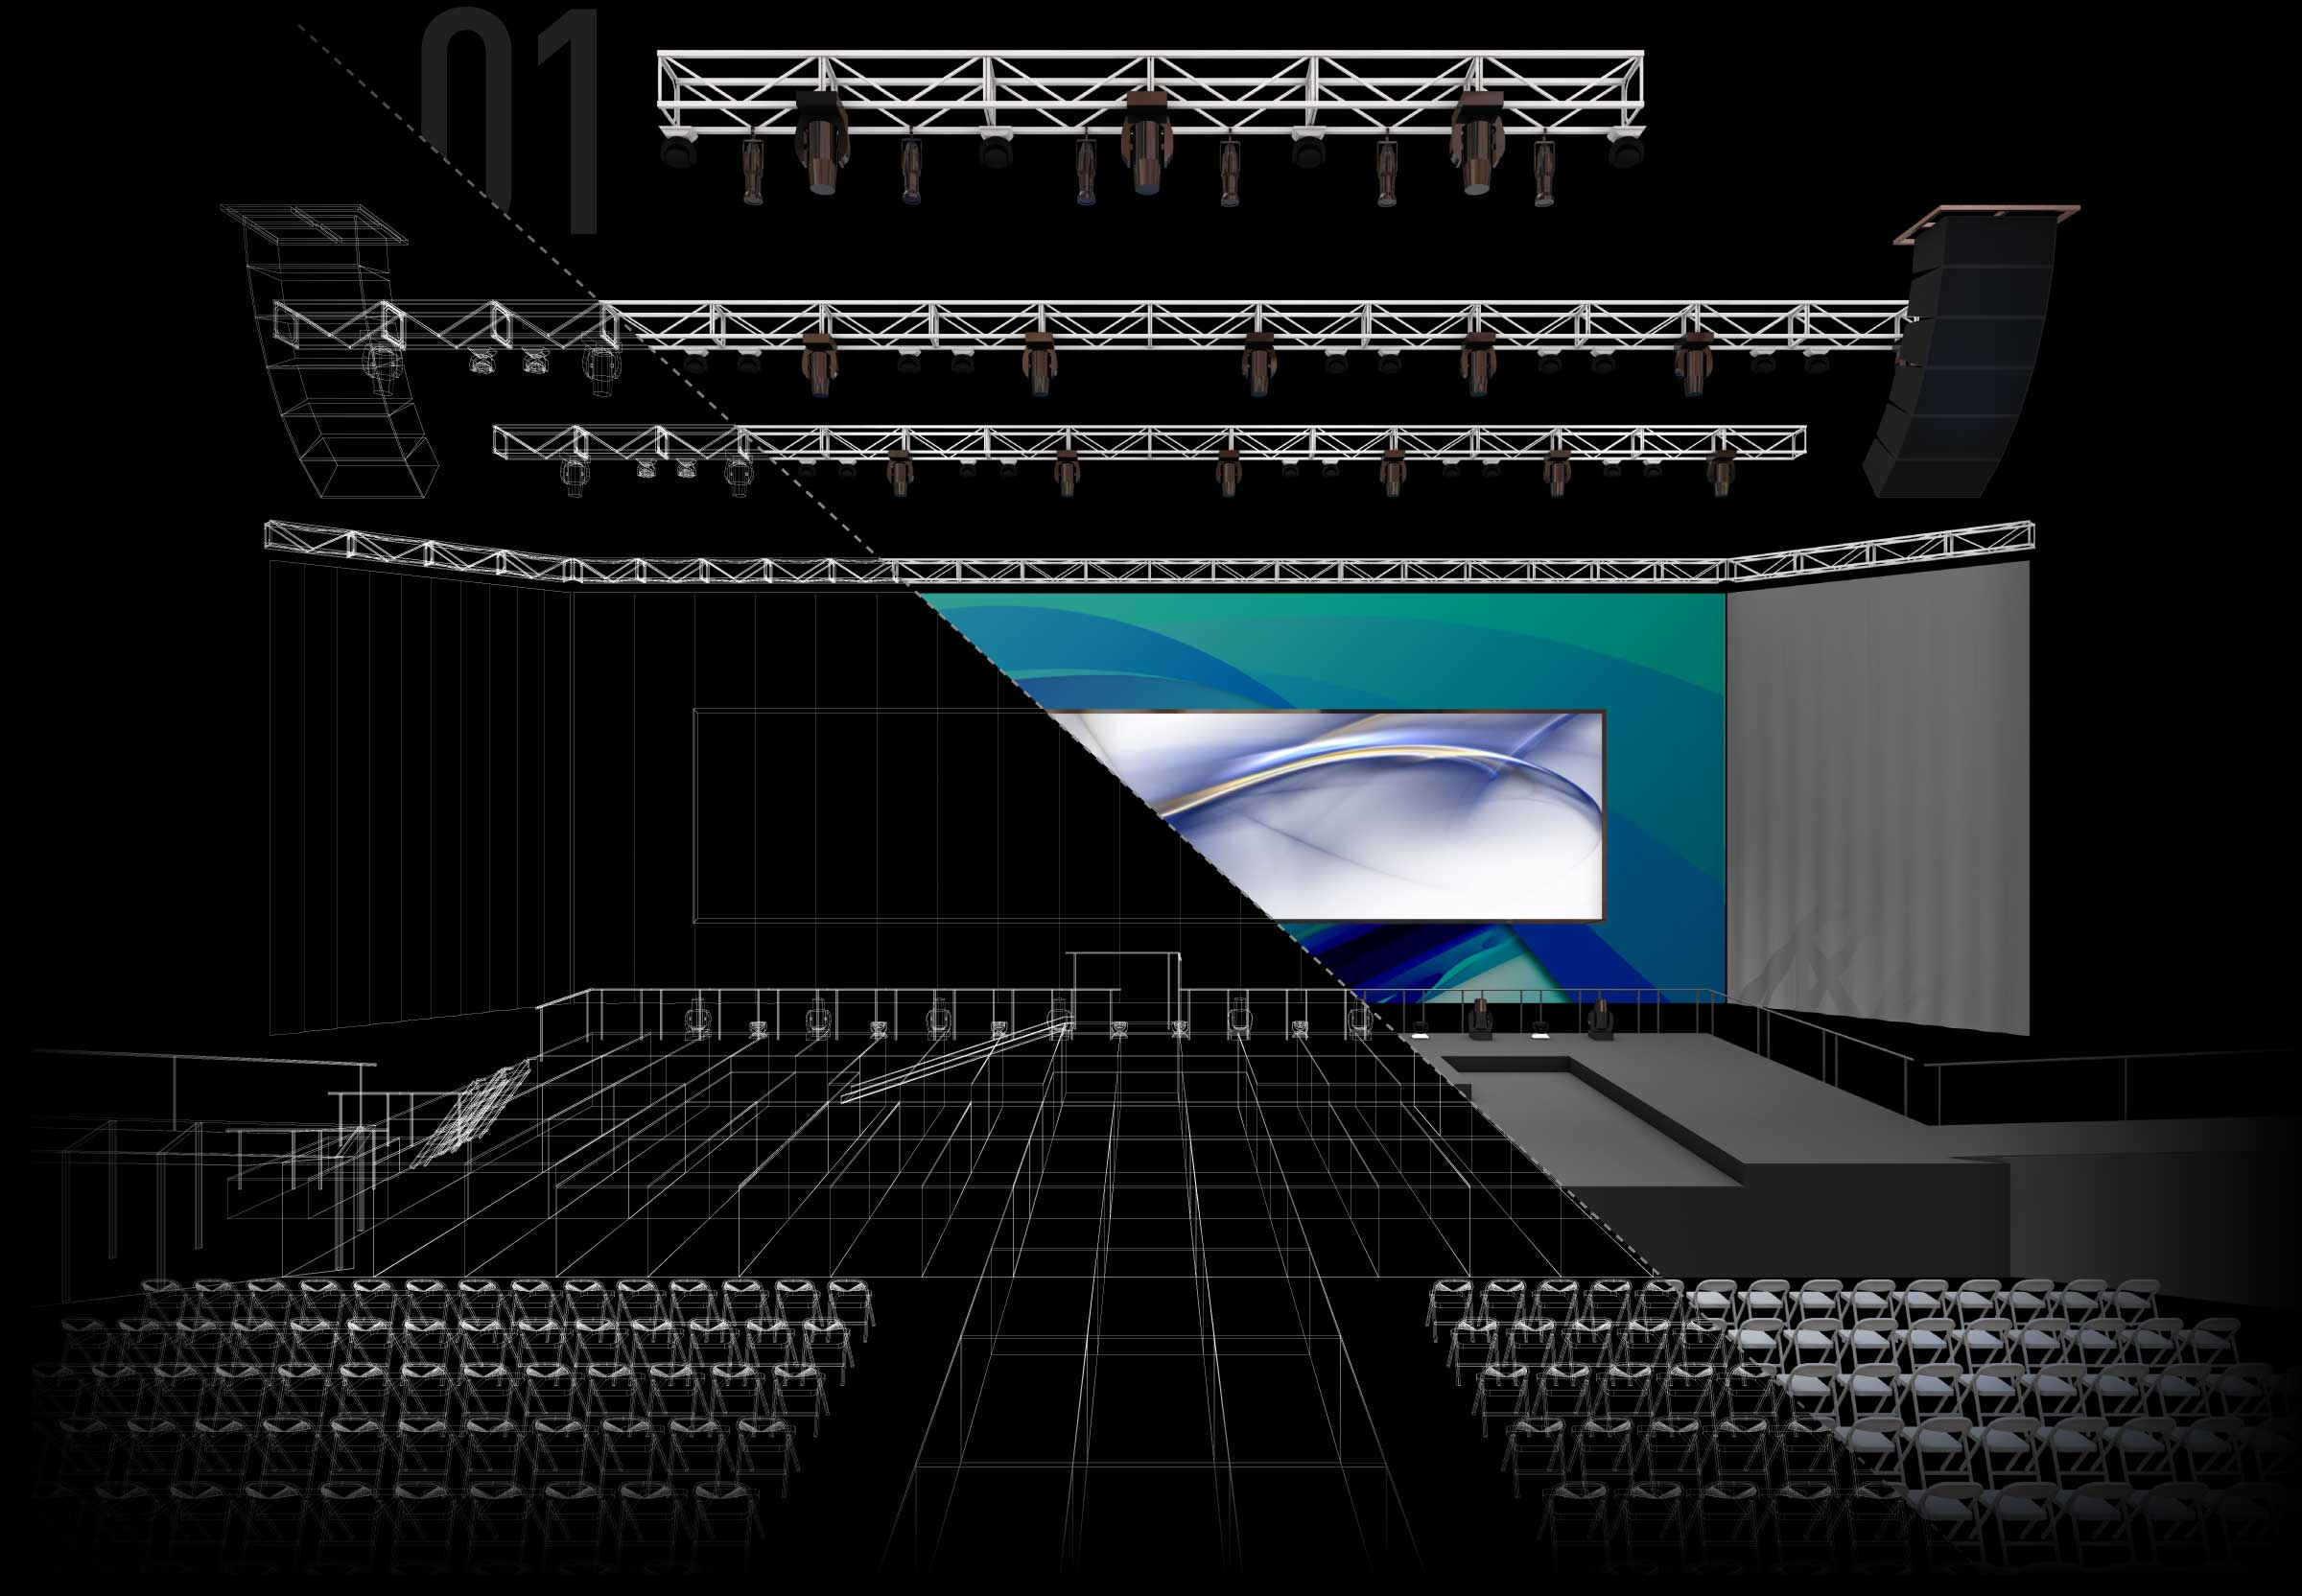 Venue design with drawings and 3D rendering